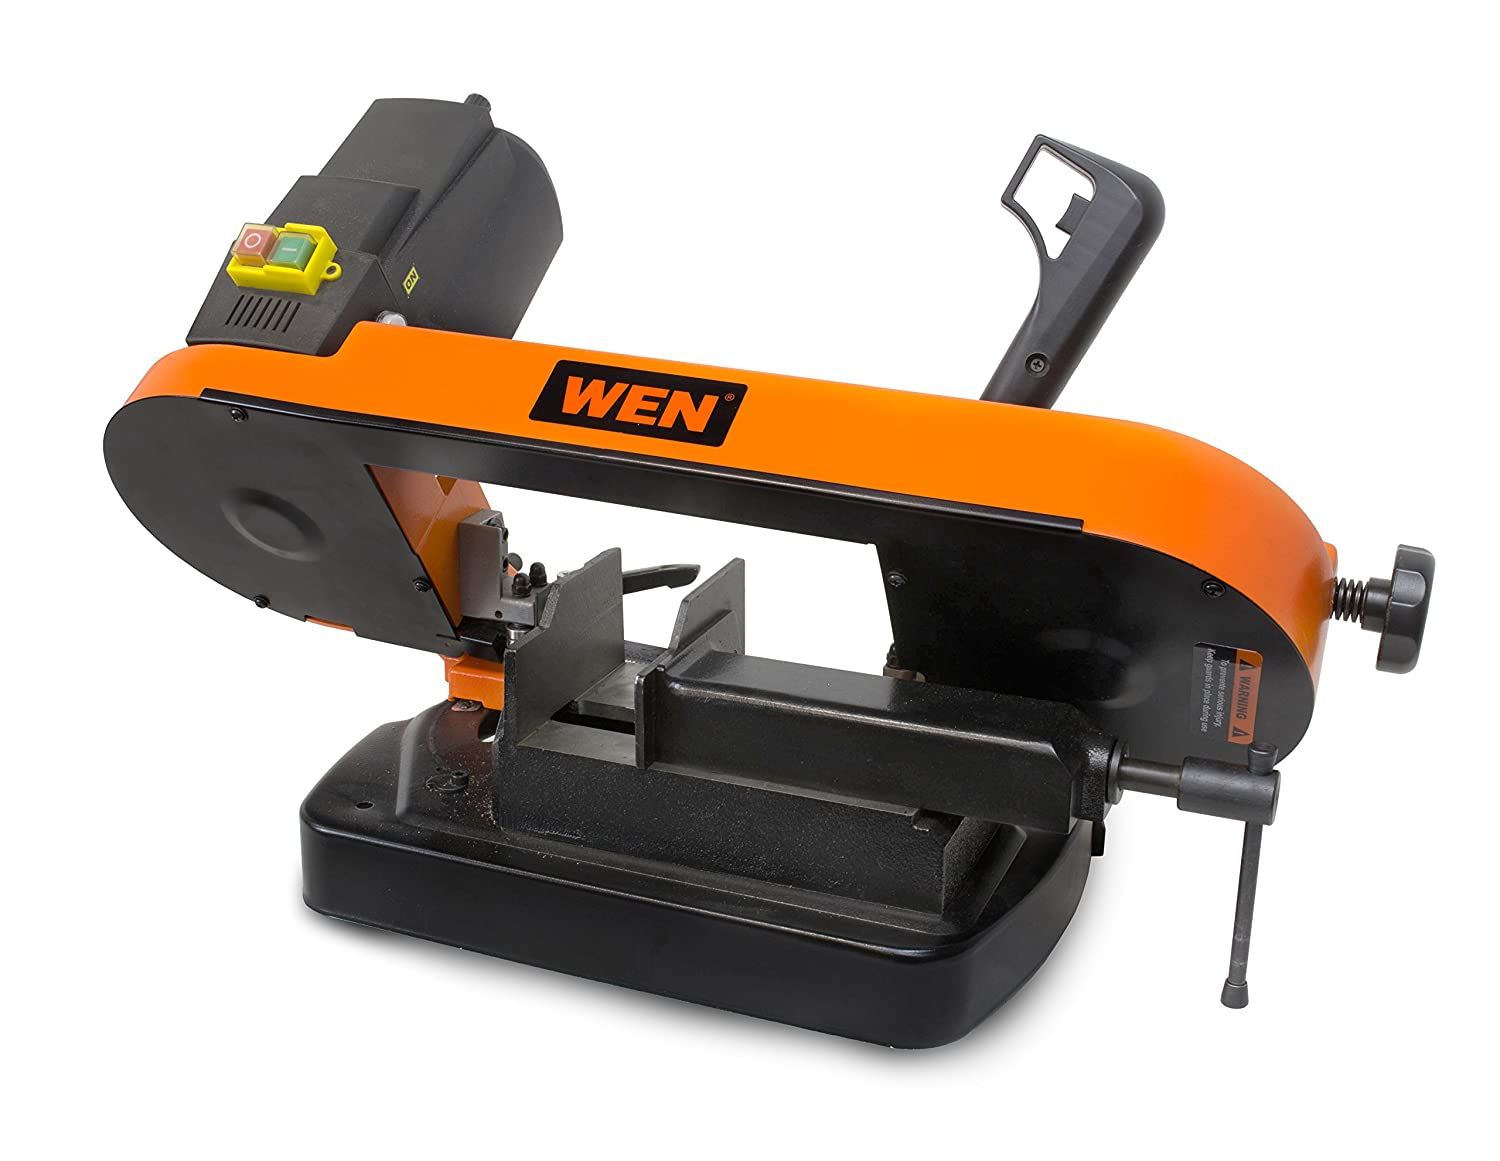 Wen 3975 5 Metal Cutting Benchtop Bandsaw Amazon Com